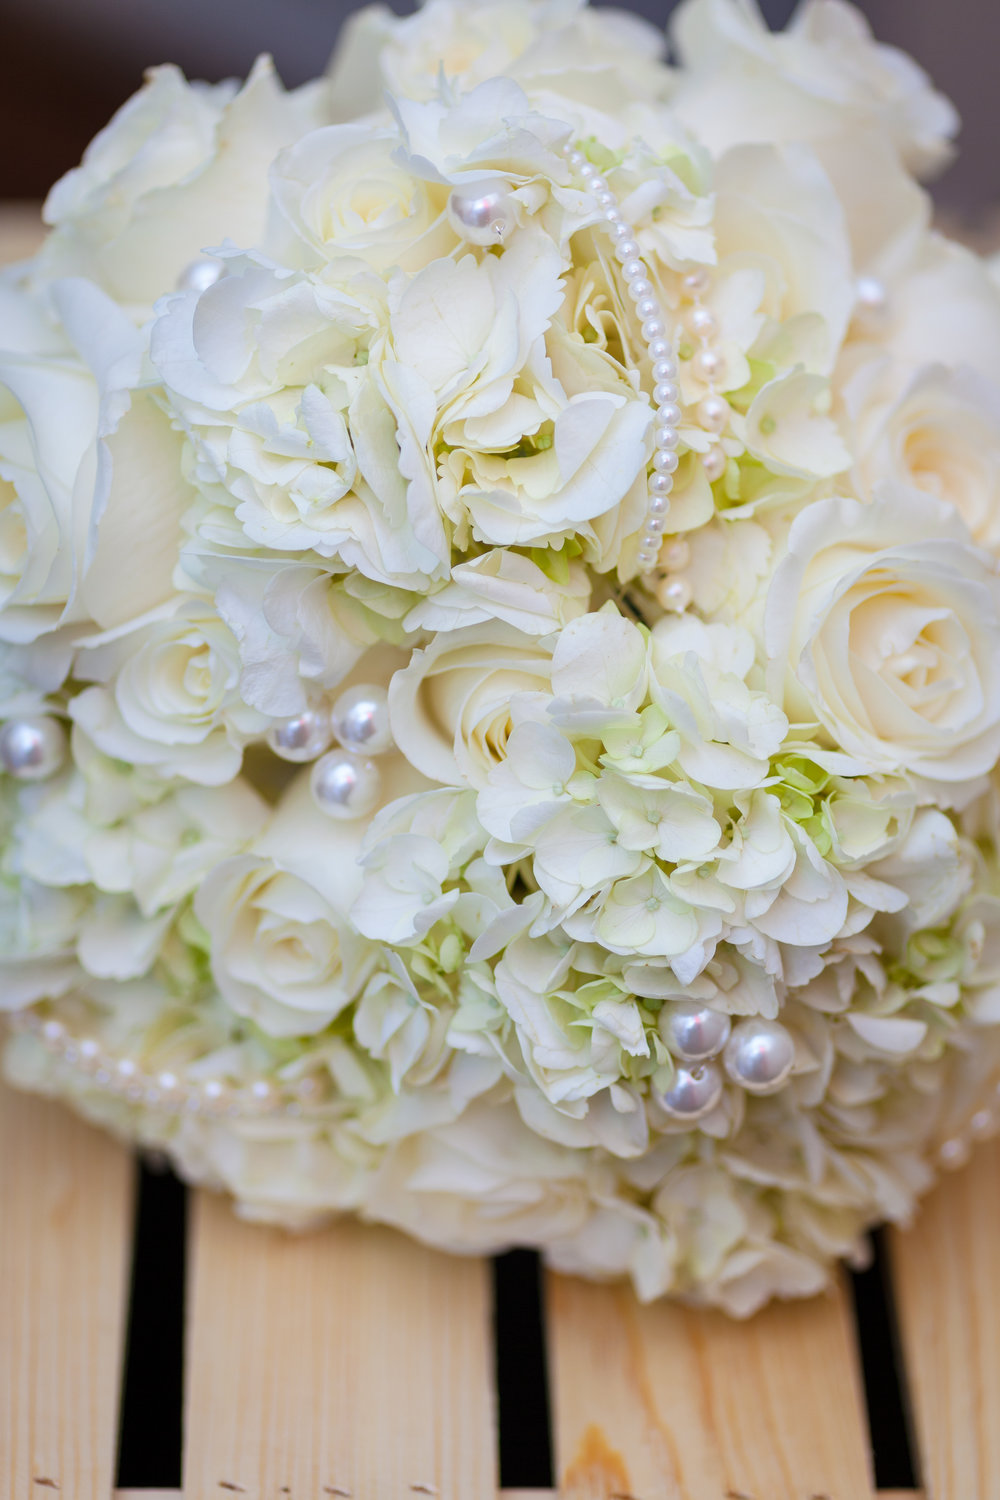 Close up of Bride's White Pearl Bouquet created by Evelisa Floral & Design, photographed by Dpsnapsphotography